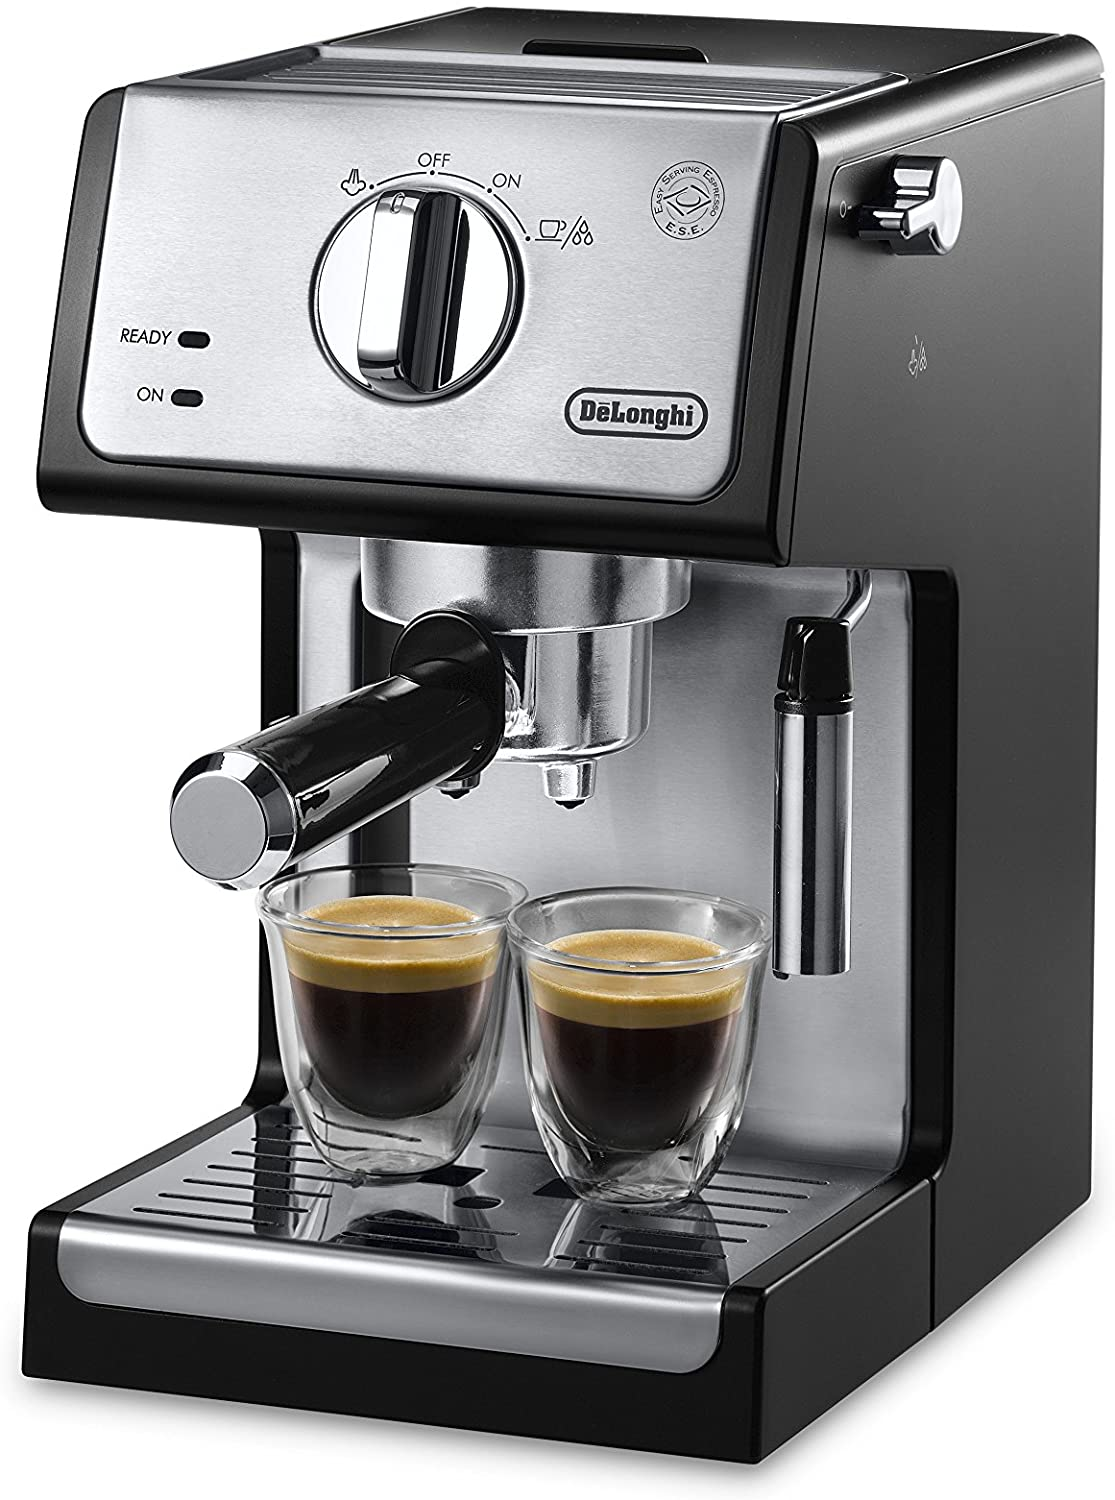 The Best Espresso Machine for Mom - 2021 Ratings & Reviews 10